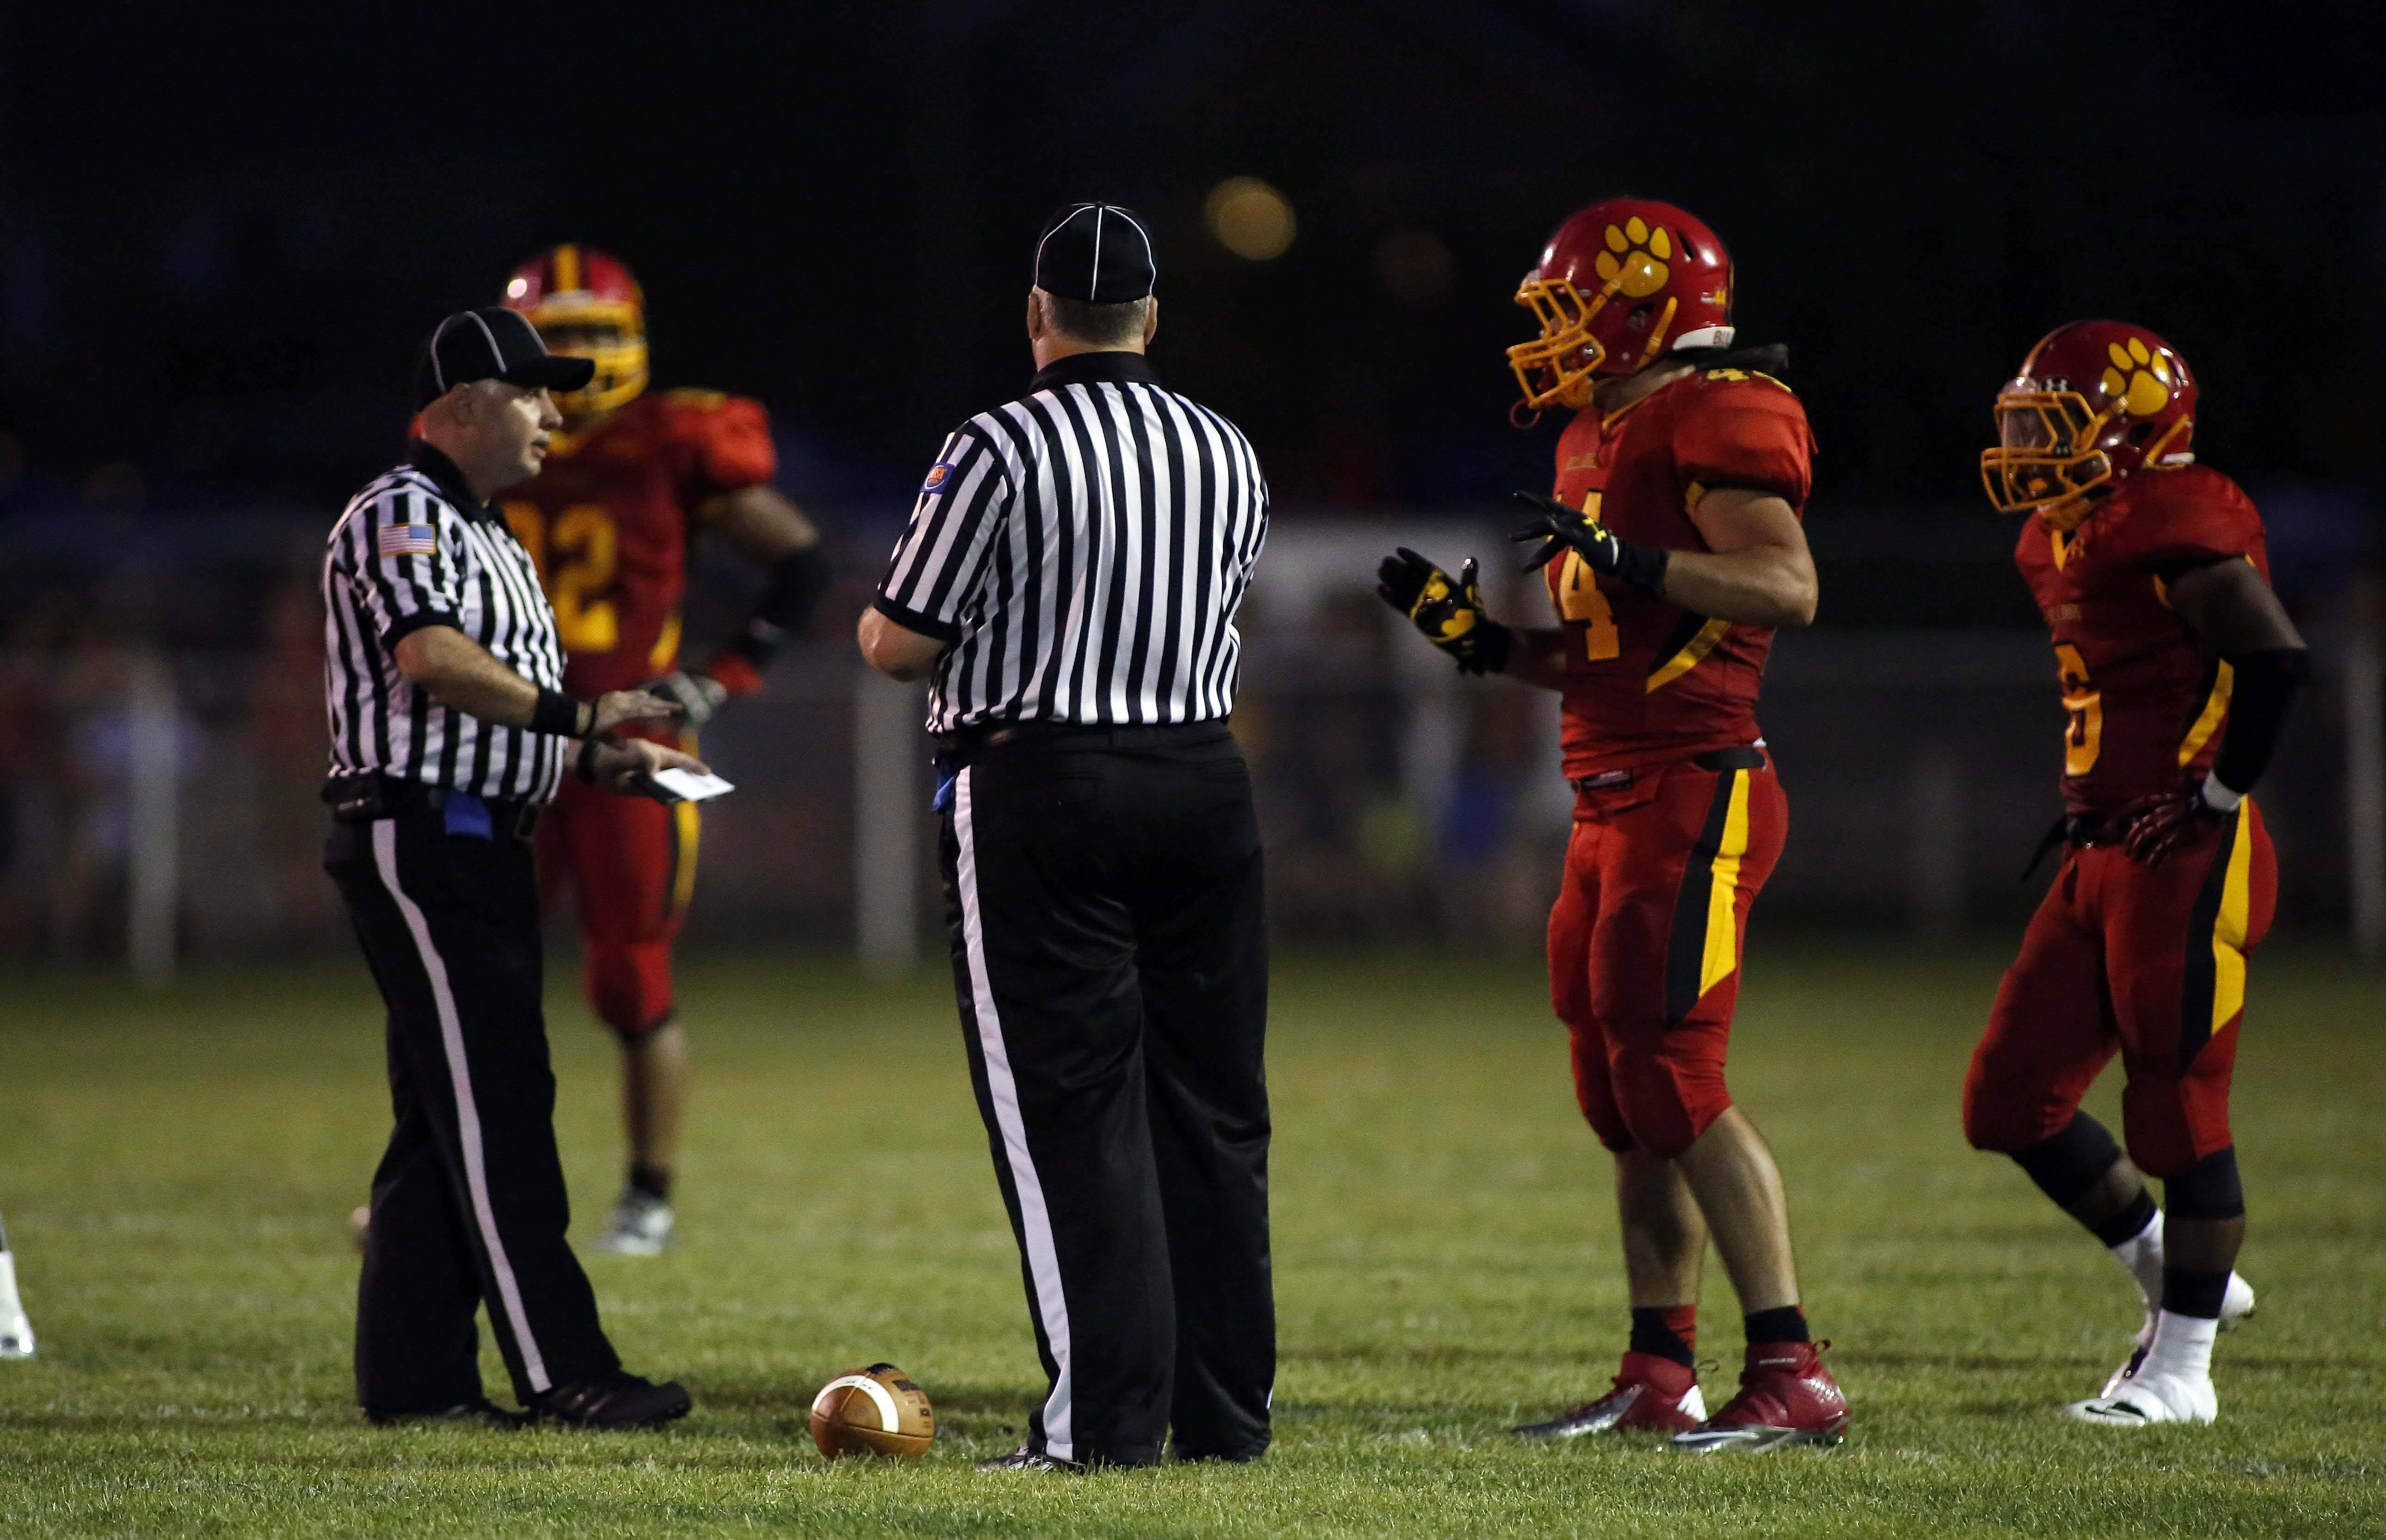 Referees delay Batavia's game because of lightning last Friday against Oswego. The teams resumed on Saturday and finished a thriller won 40-38 by the Panthers.